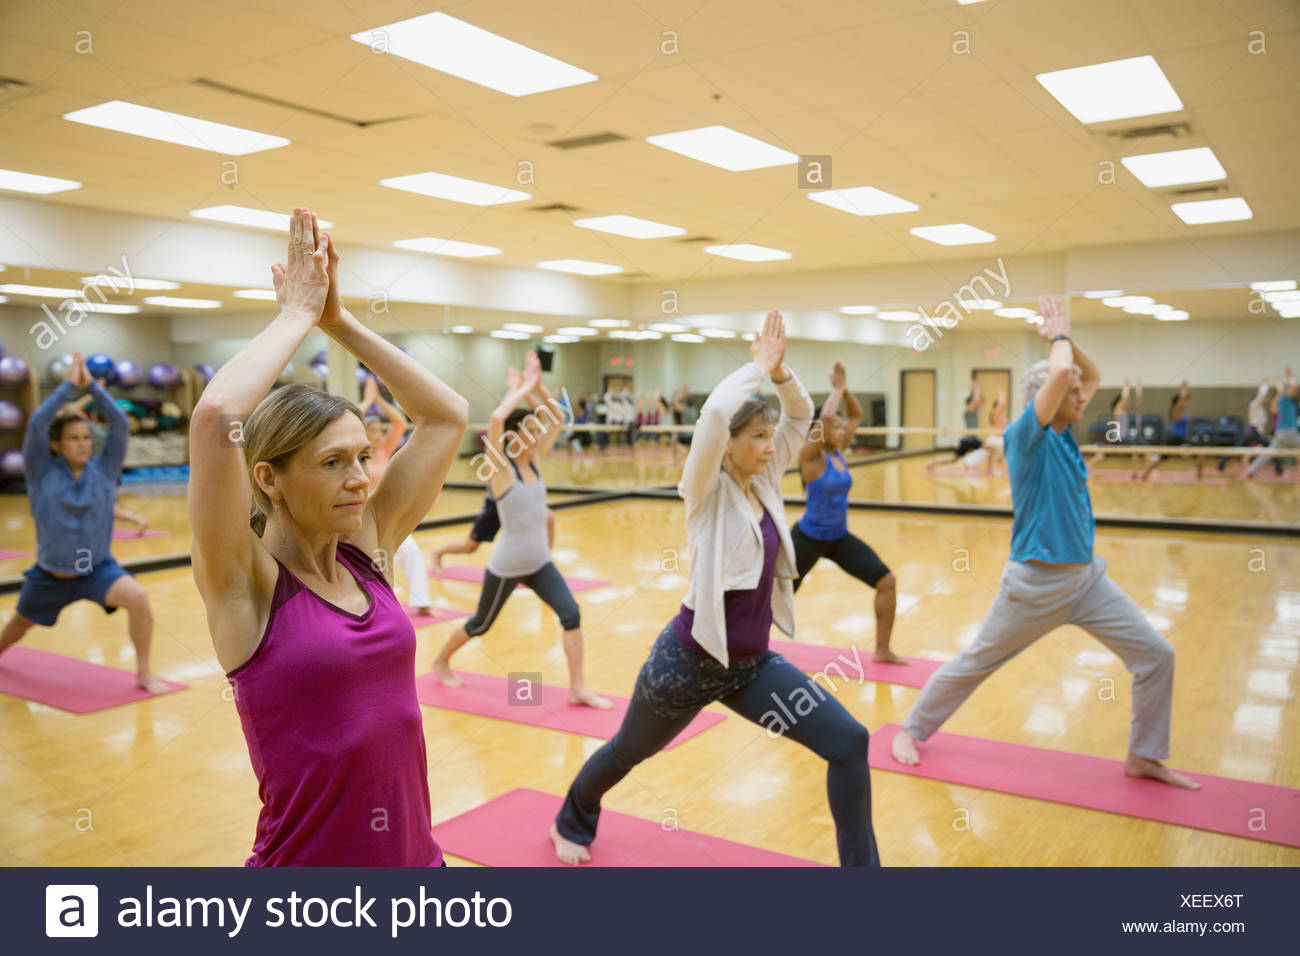 Group practicing crescent lunge in yoga class - Stock Image